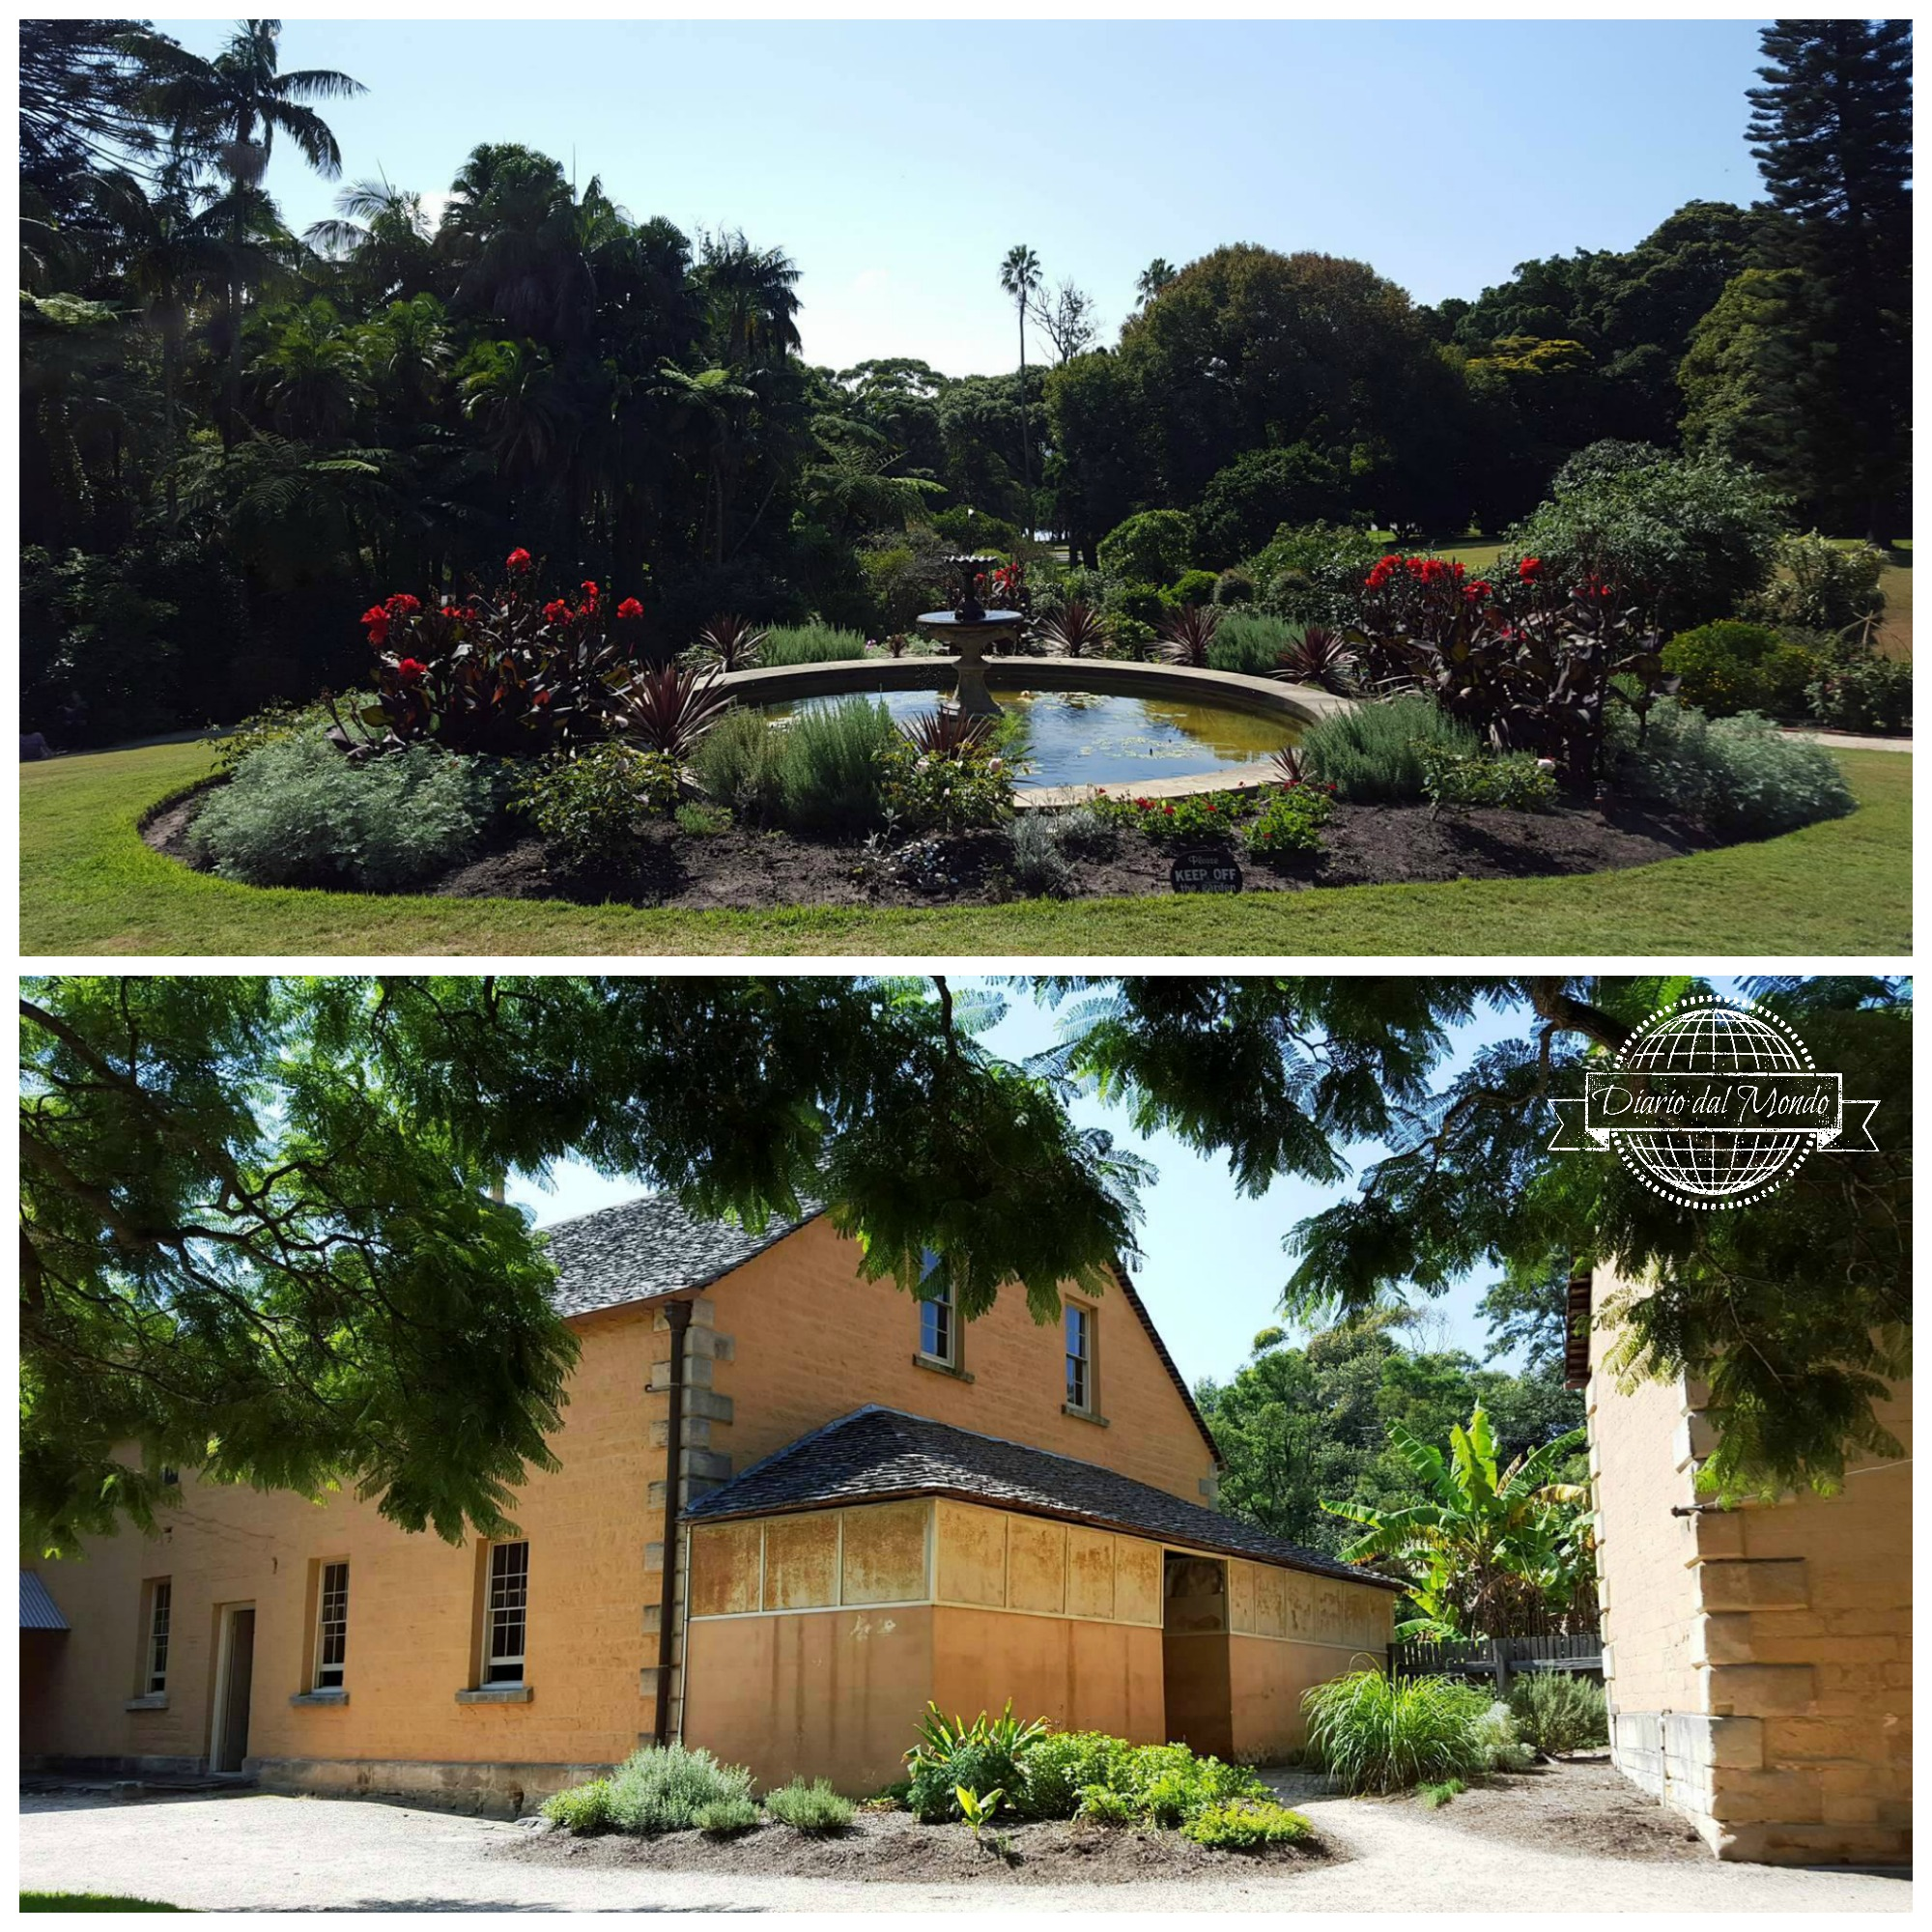 Vaucluse House grounds